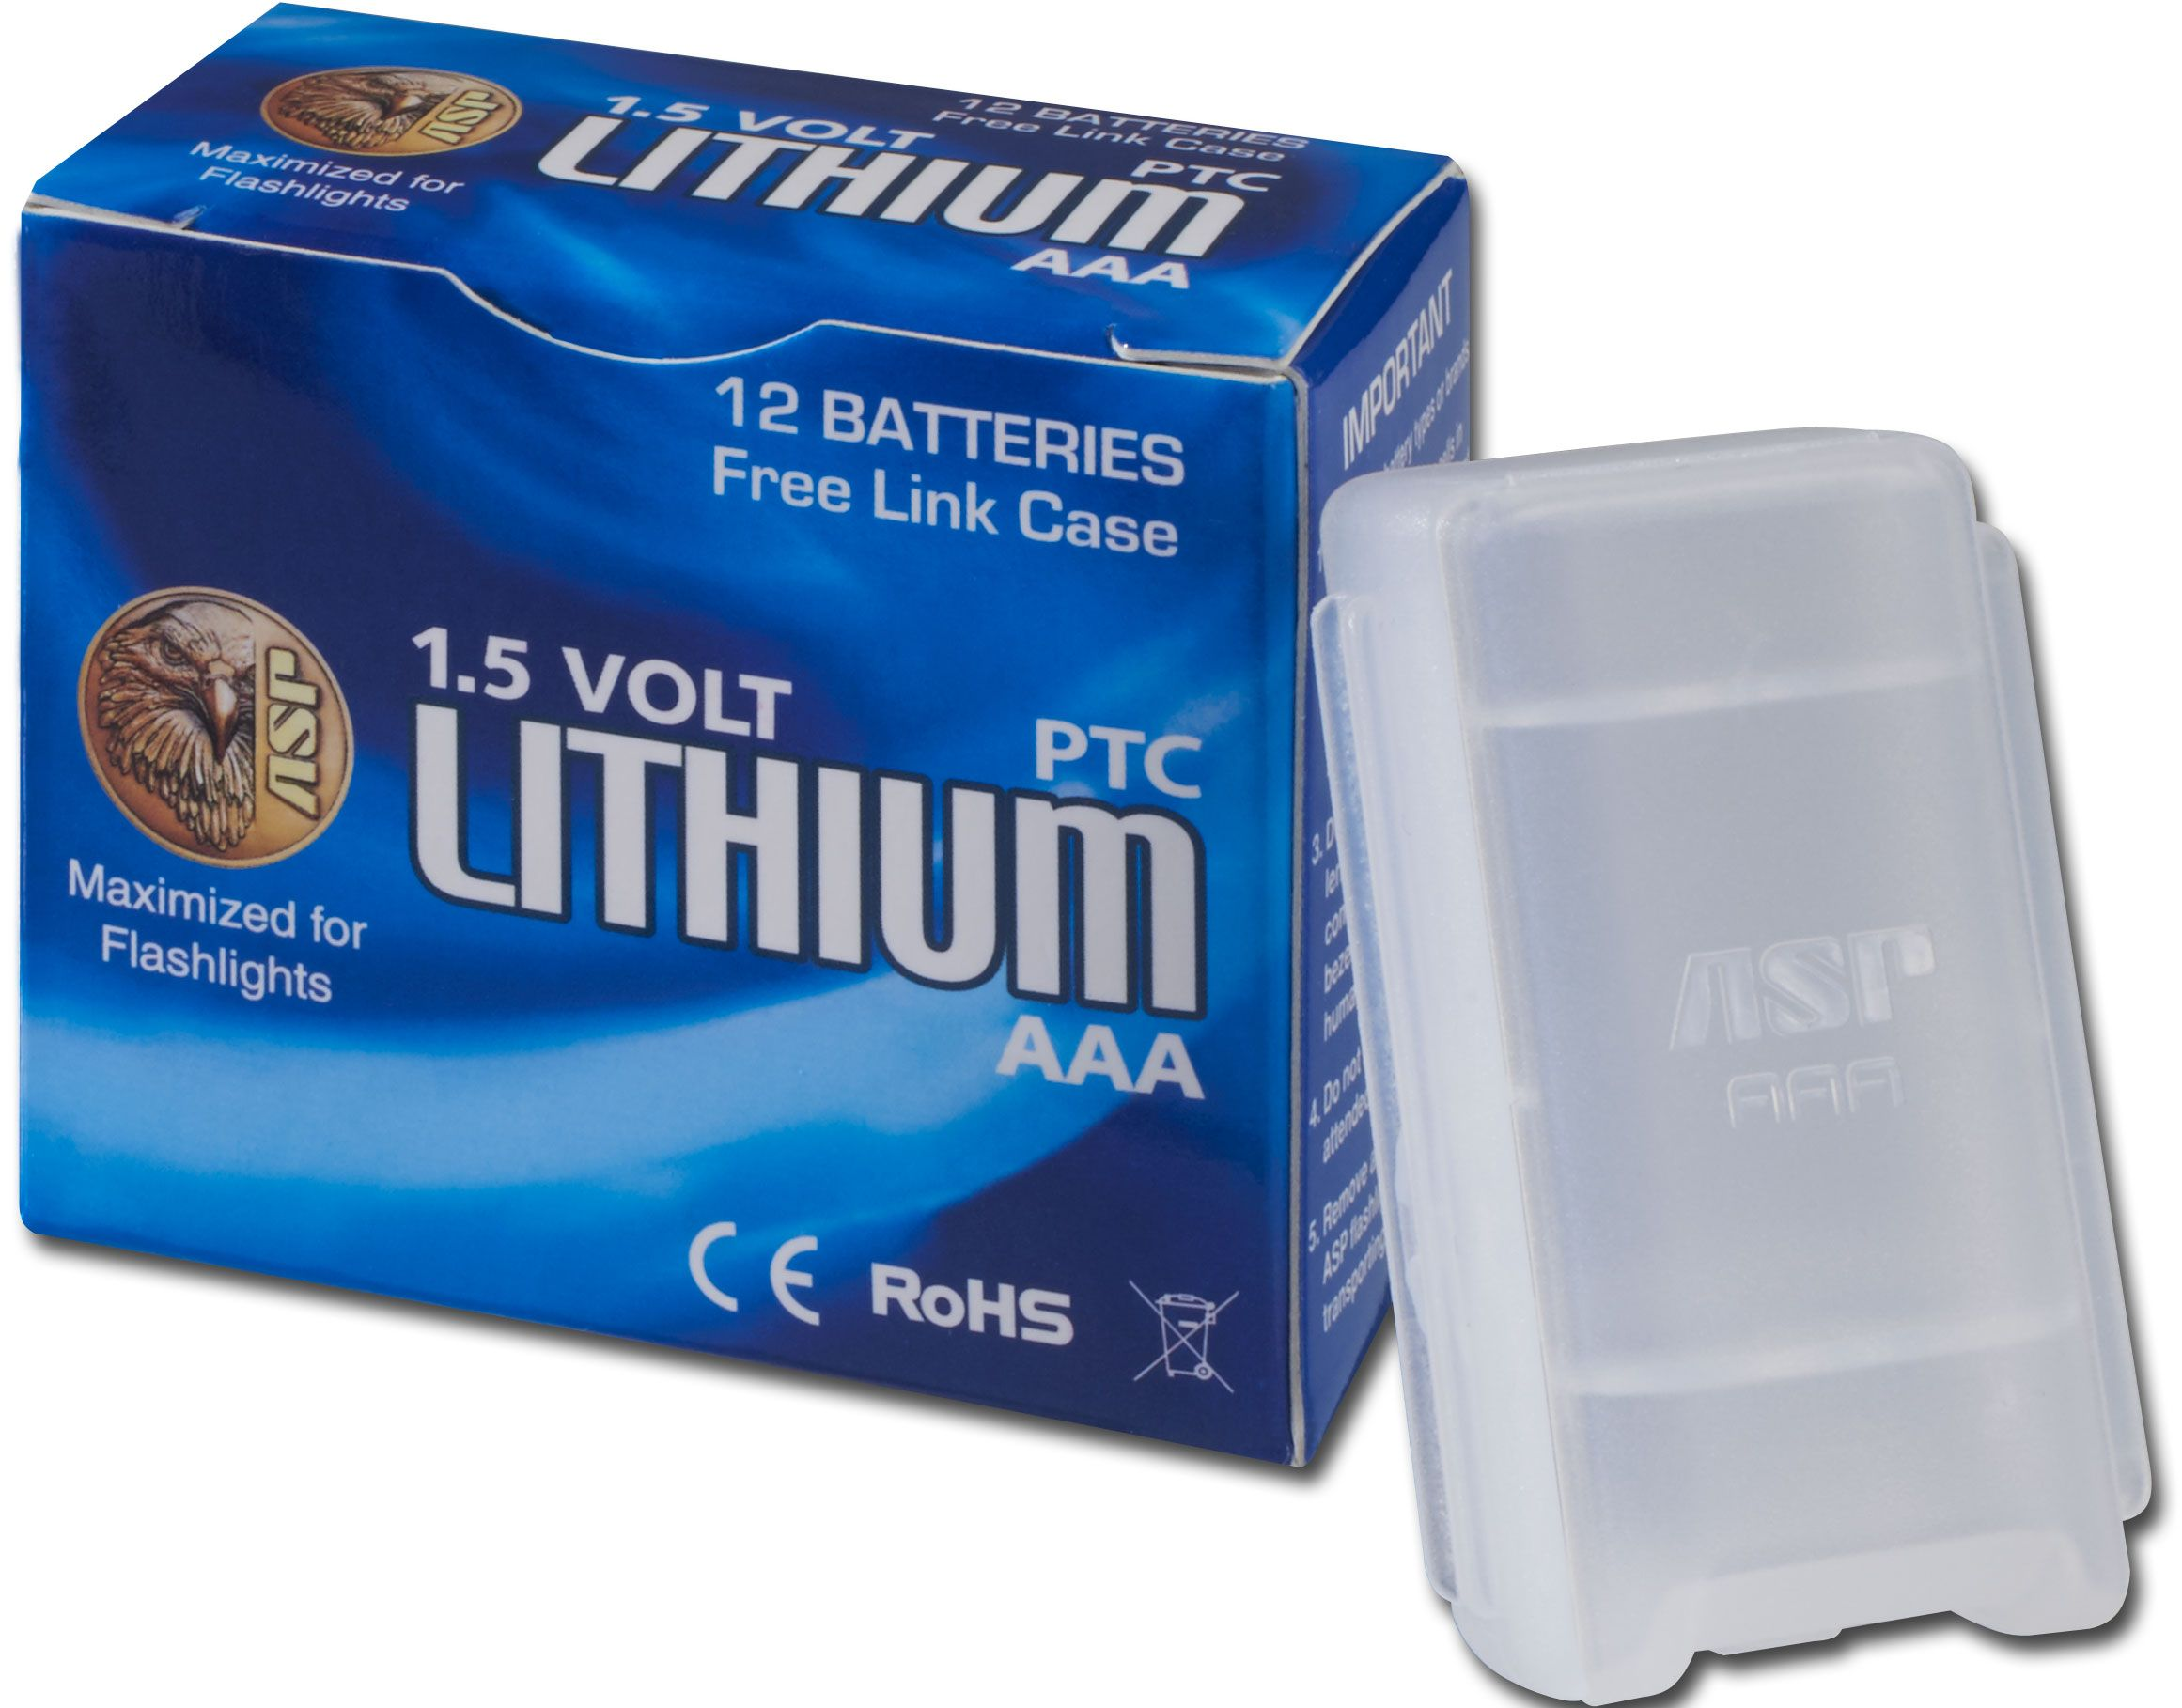 ASP AAA Lithium Batteries, 12 Pack with Link Case